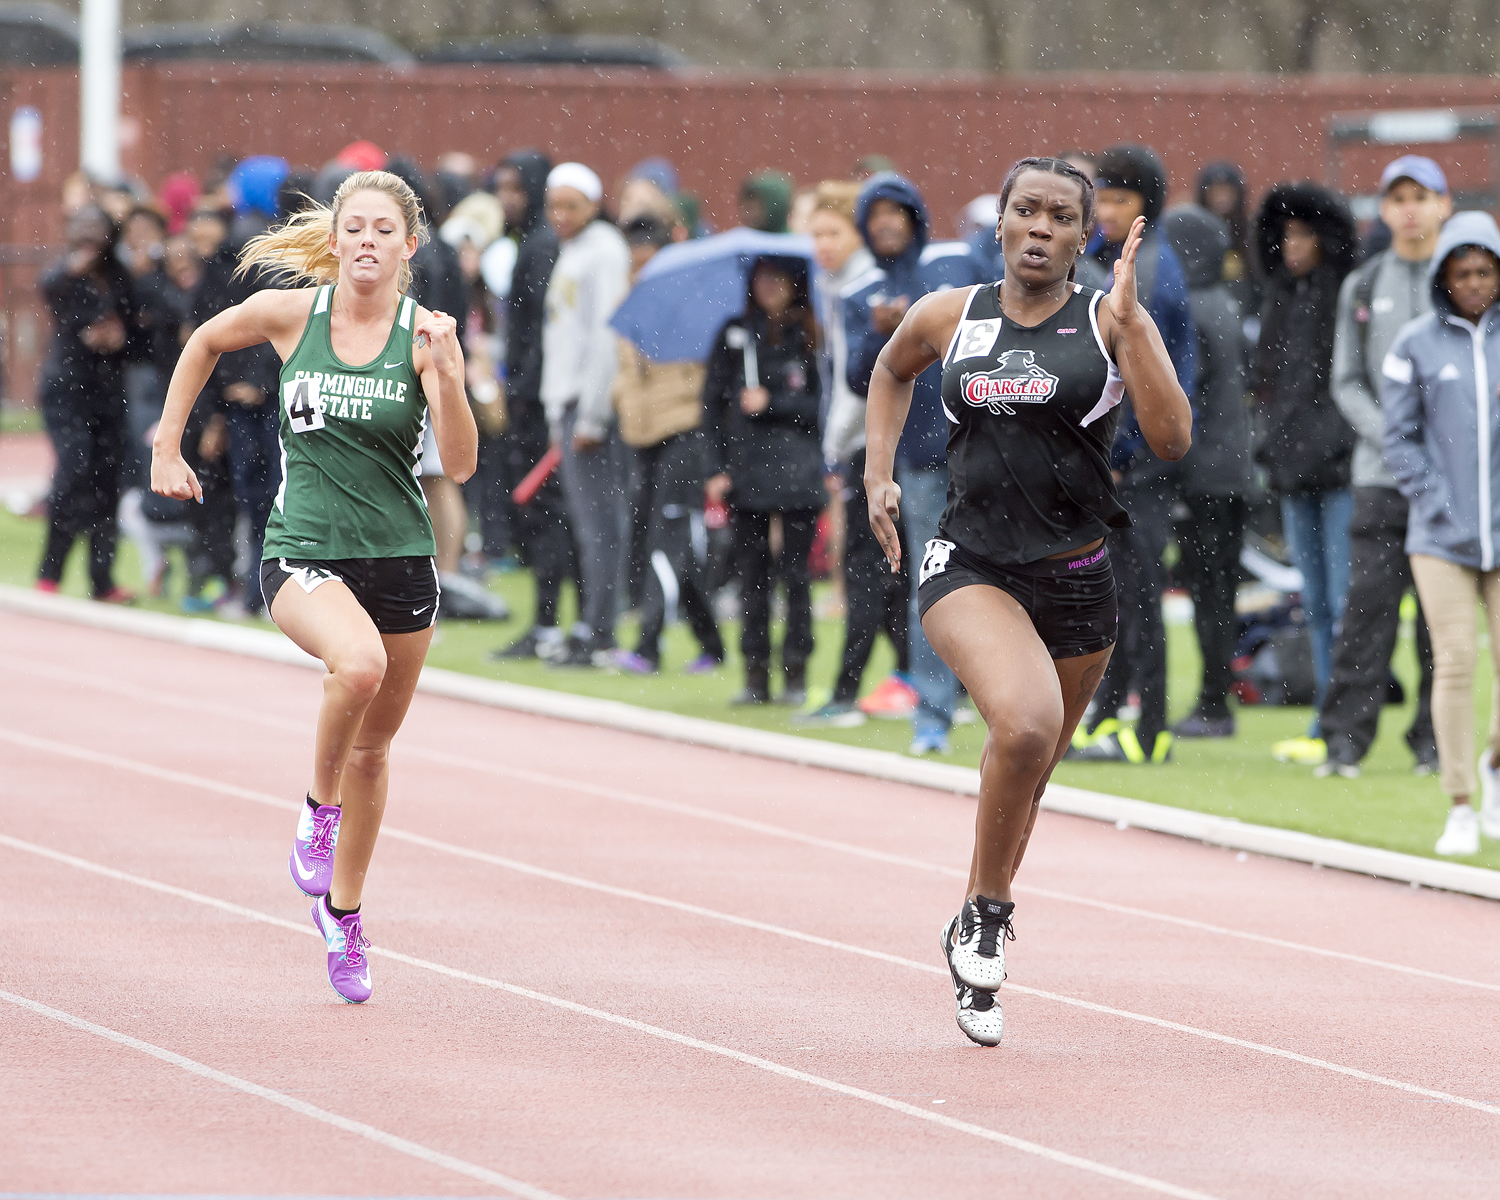 DOMINICAN COMPETES AT NYRR NIGHT AT THE RACES